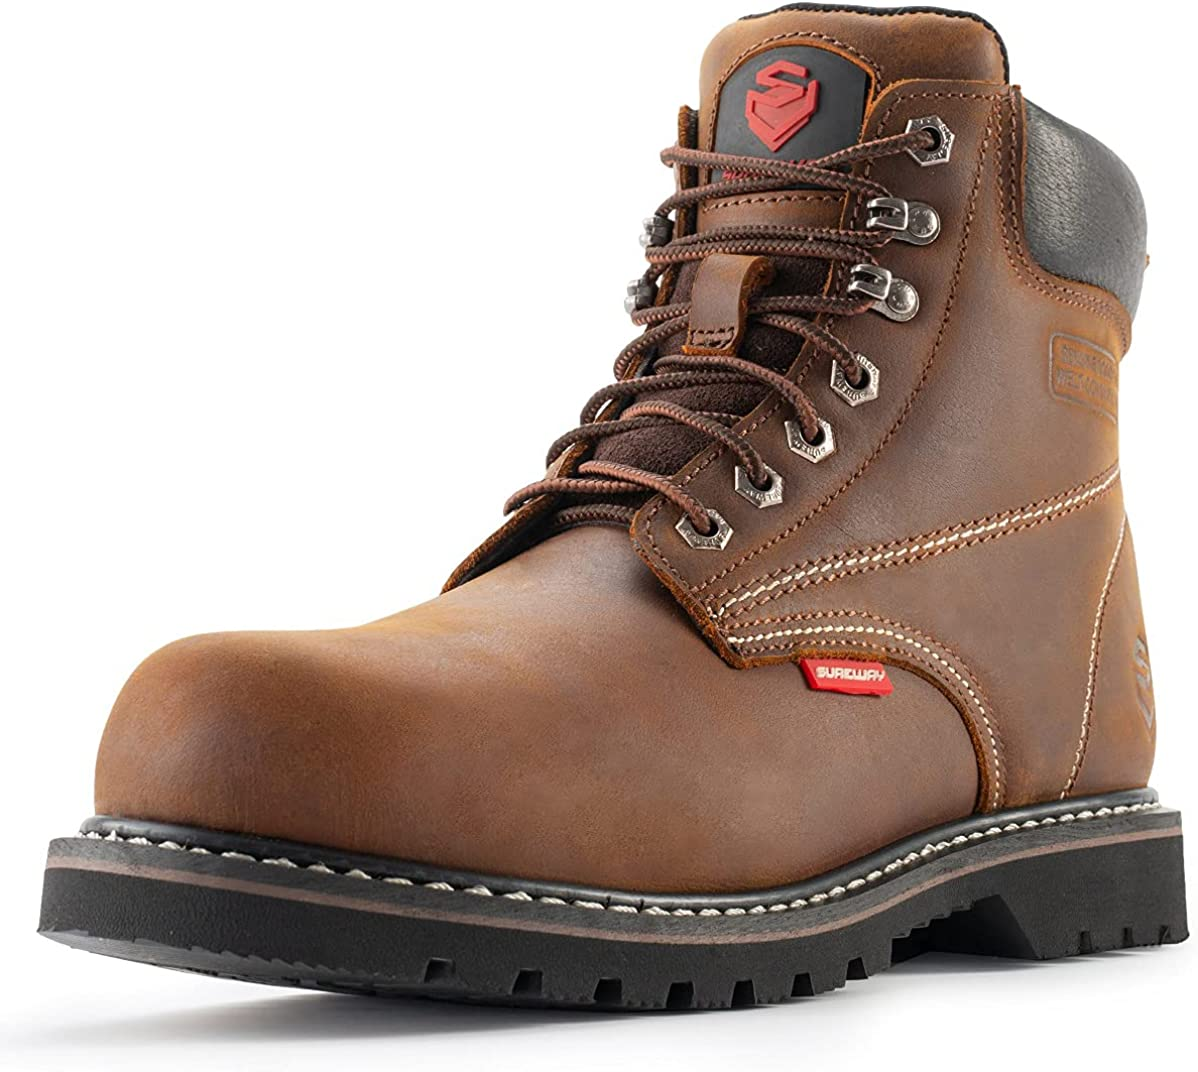 SUREWAY Steel Toe Boots Surprise price for Men Leather Inventory cleanup selling sale Full Non-Slip M 6